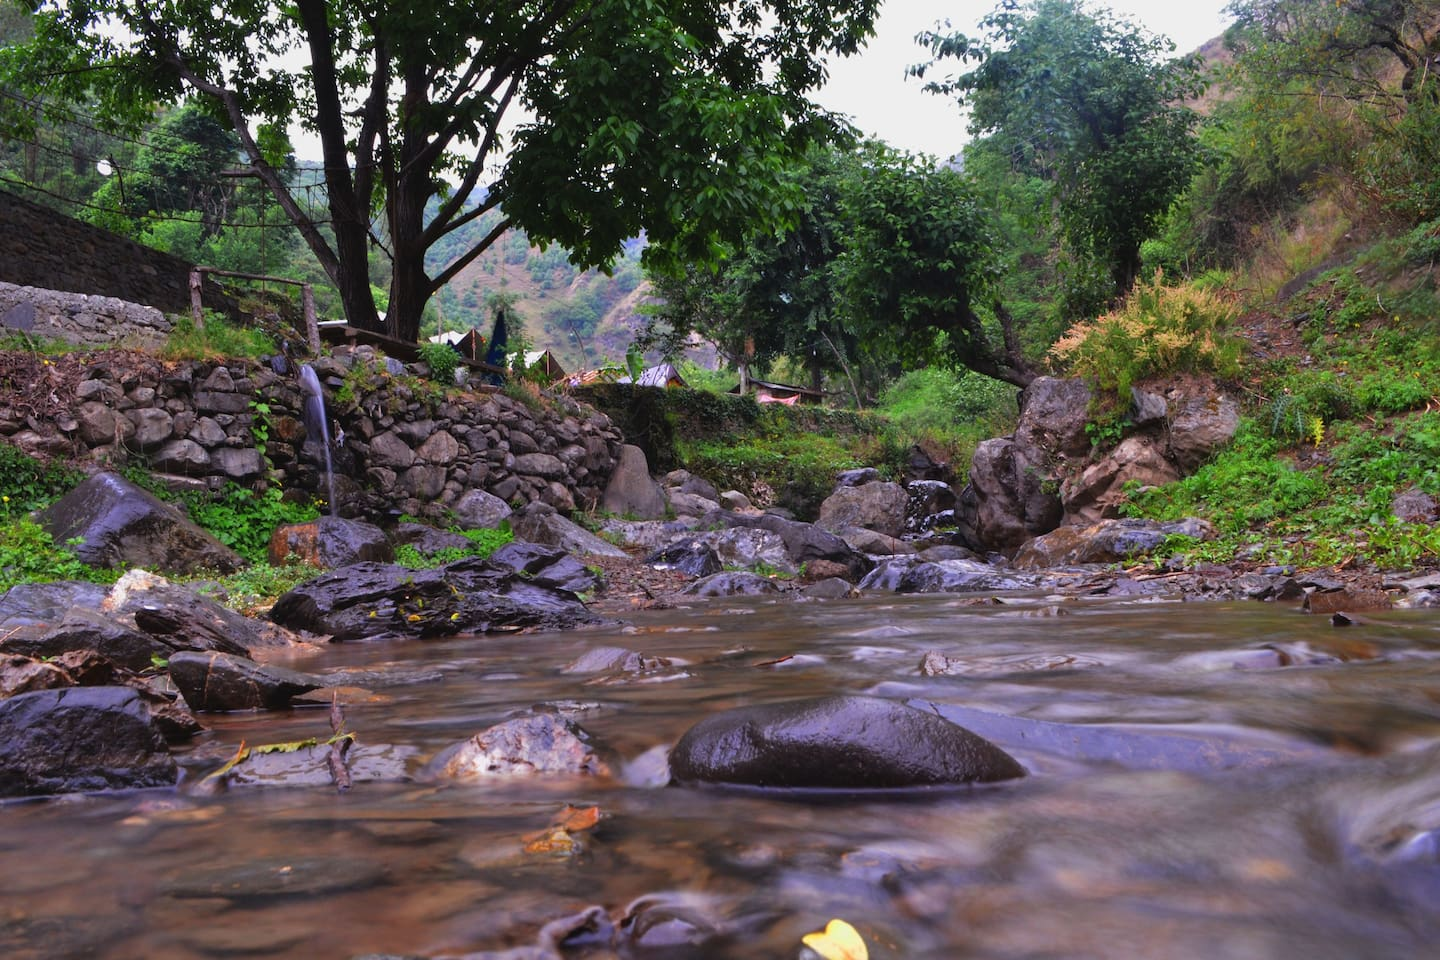 Surrender to nature or dip your feet in the stream of river flowing through your backyard.